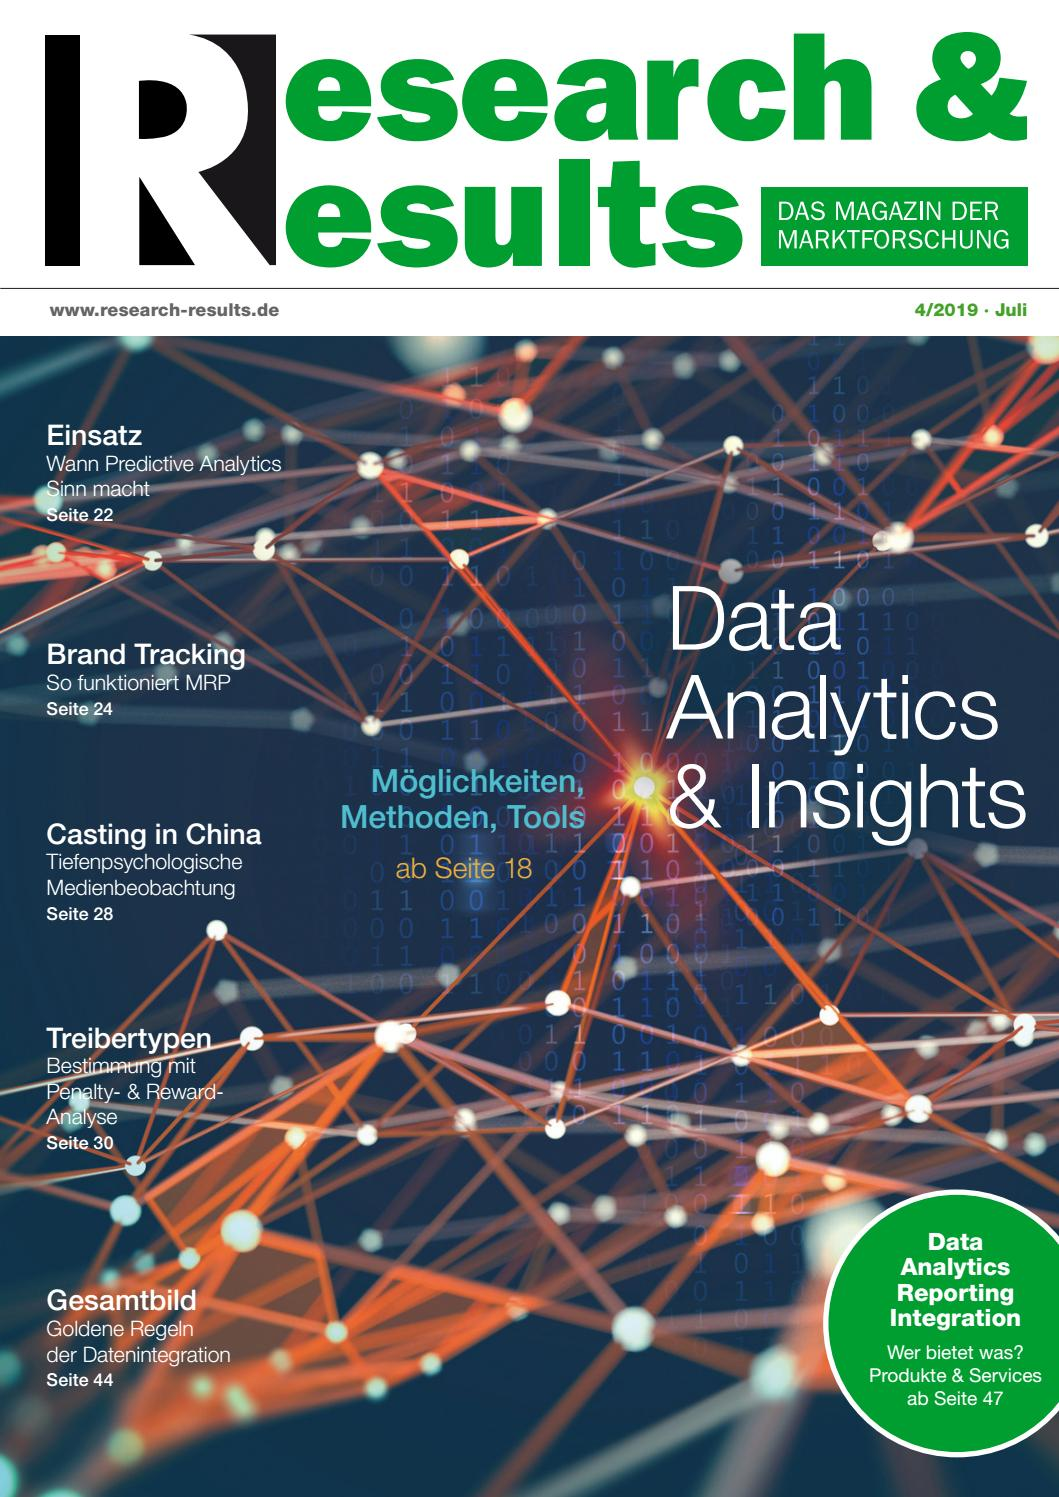 Research & Results 4/2019 by Research & Results - issuu